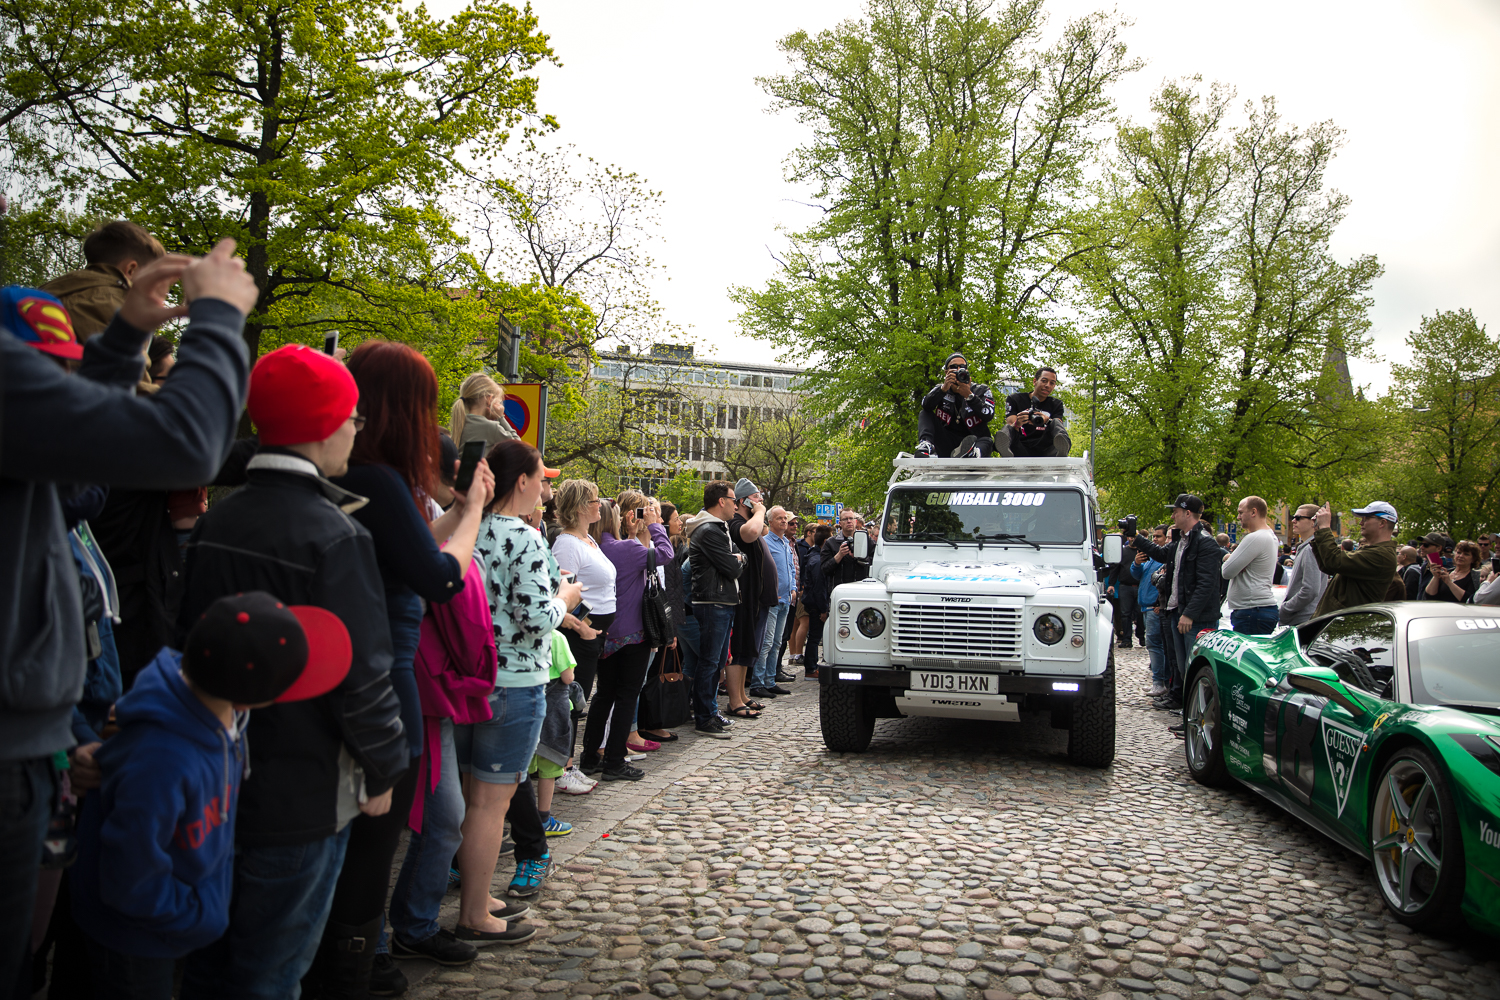 SMoores_15-05-24_Gumball 3000 Day 1_0923-Edit.jpg